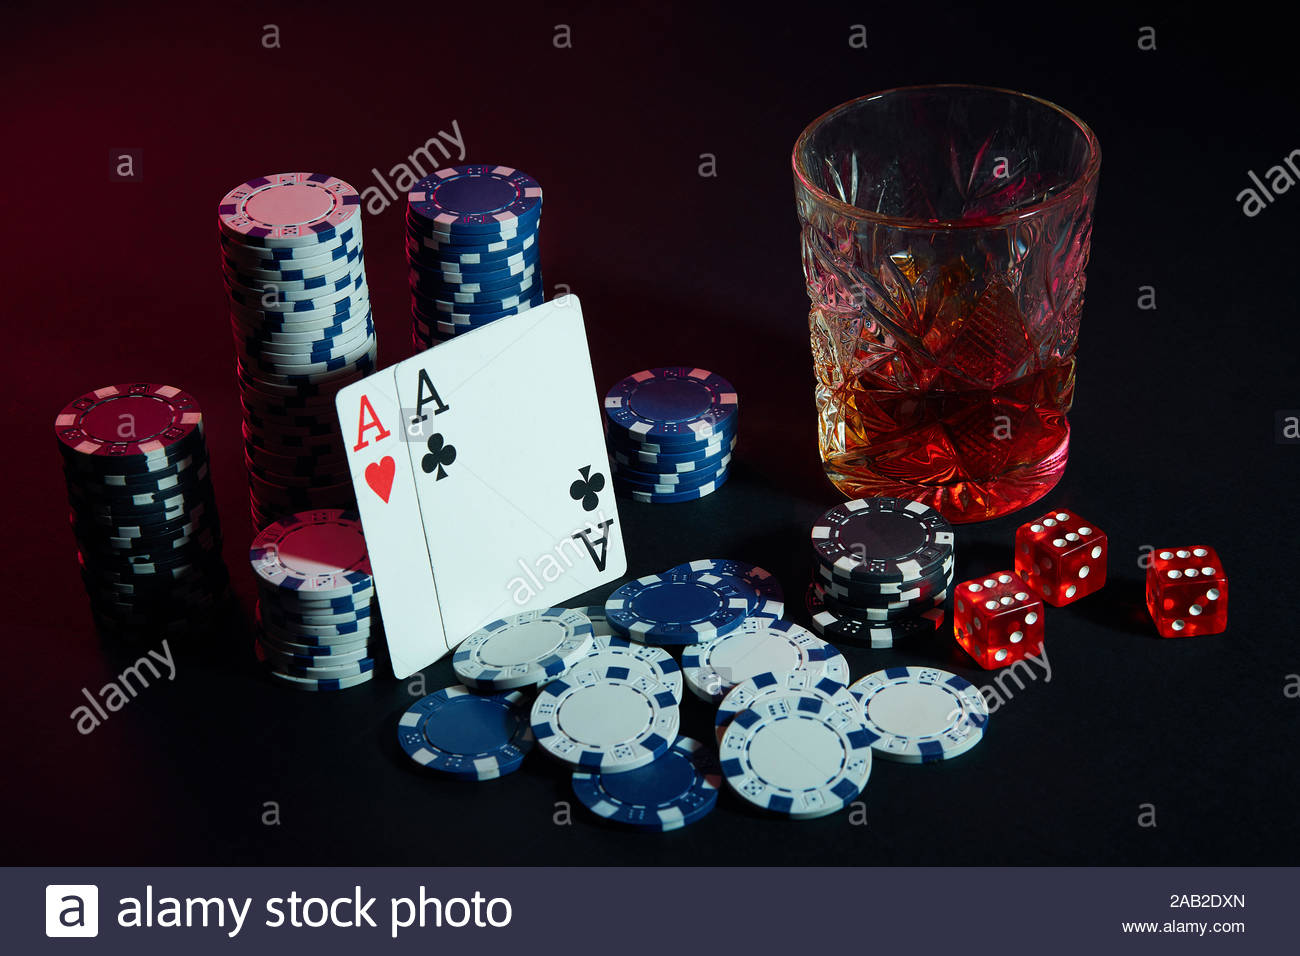 Questioning The Way To Make Your Gambling Rock